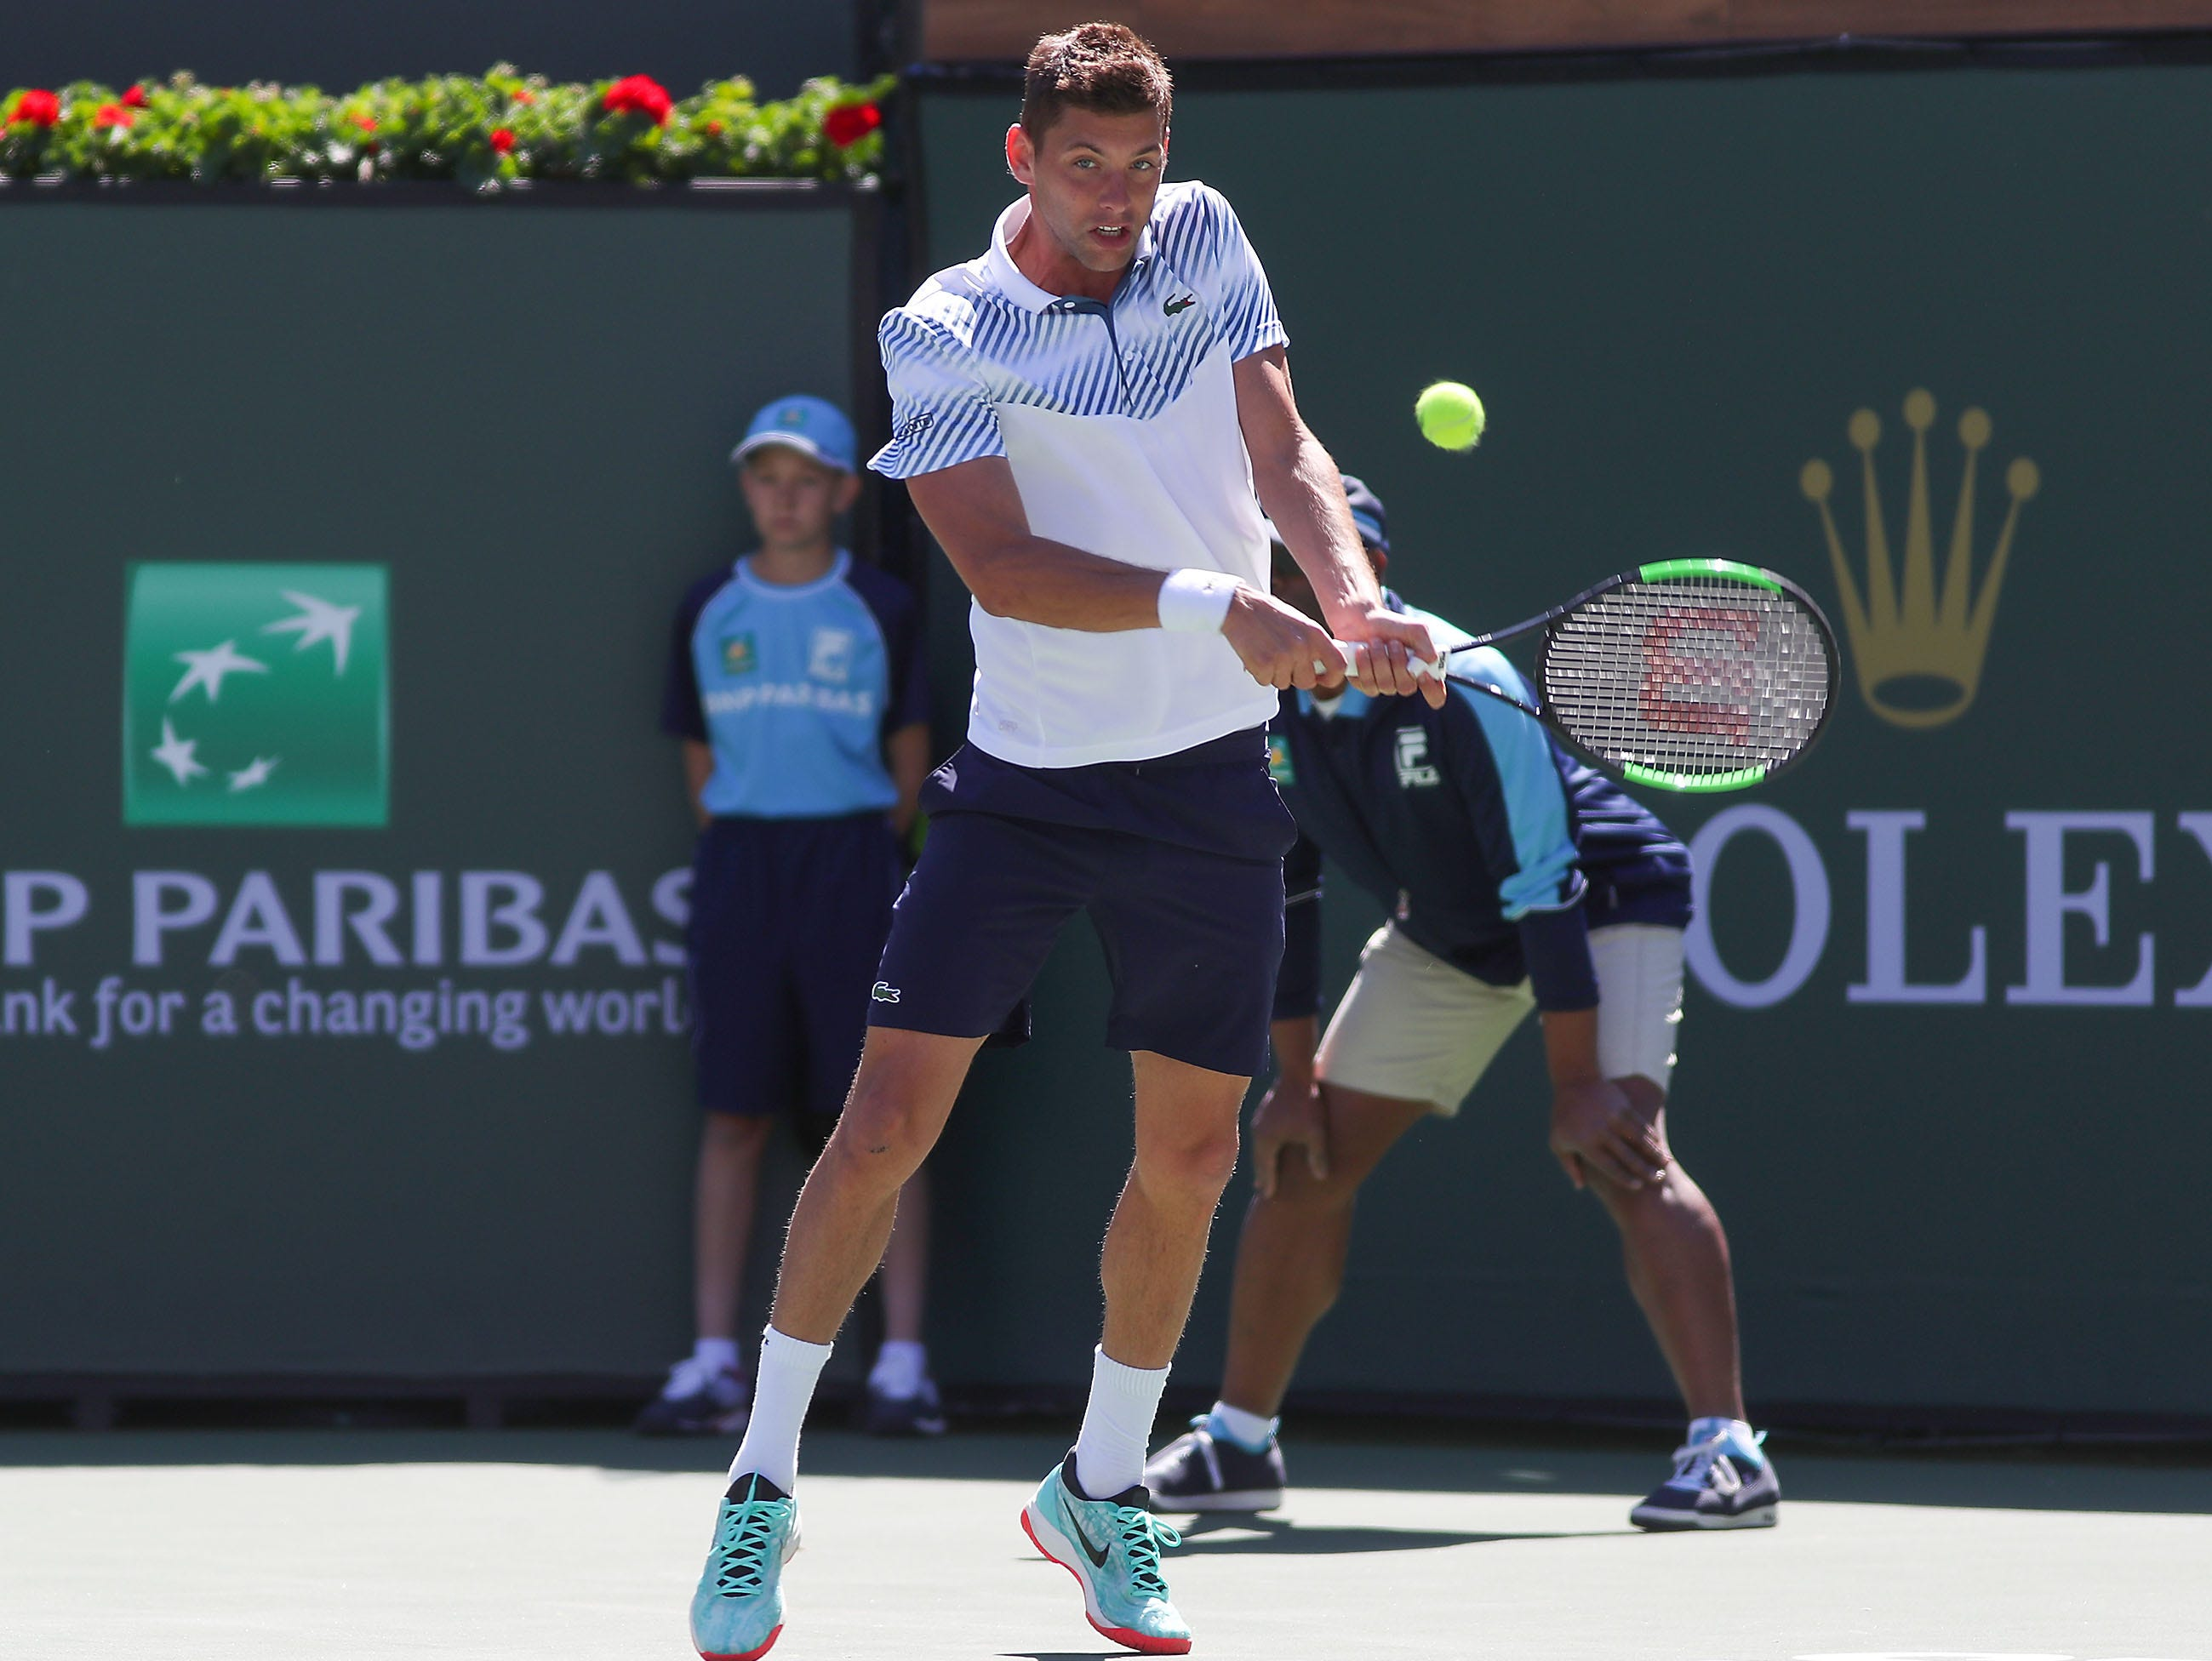 Filip Krajinovic hits a shot during his loss to Rafael Nadal at the BNP Paribas Open in Indian Wells, March 13, 2019.